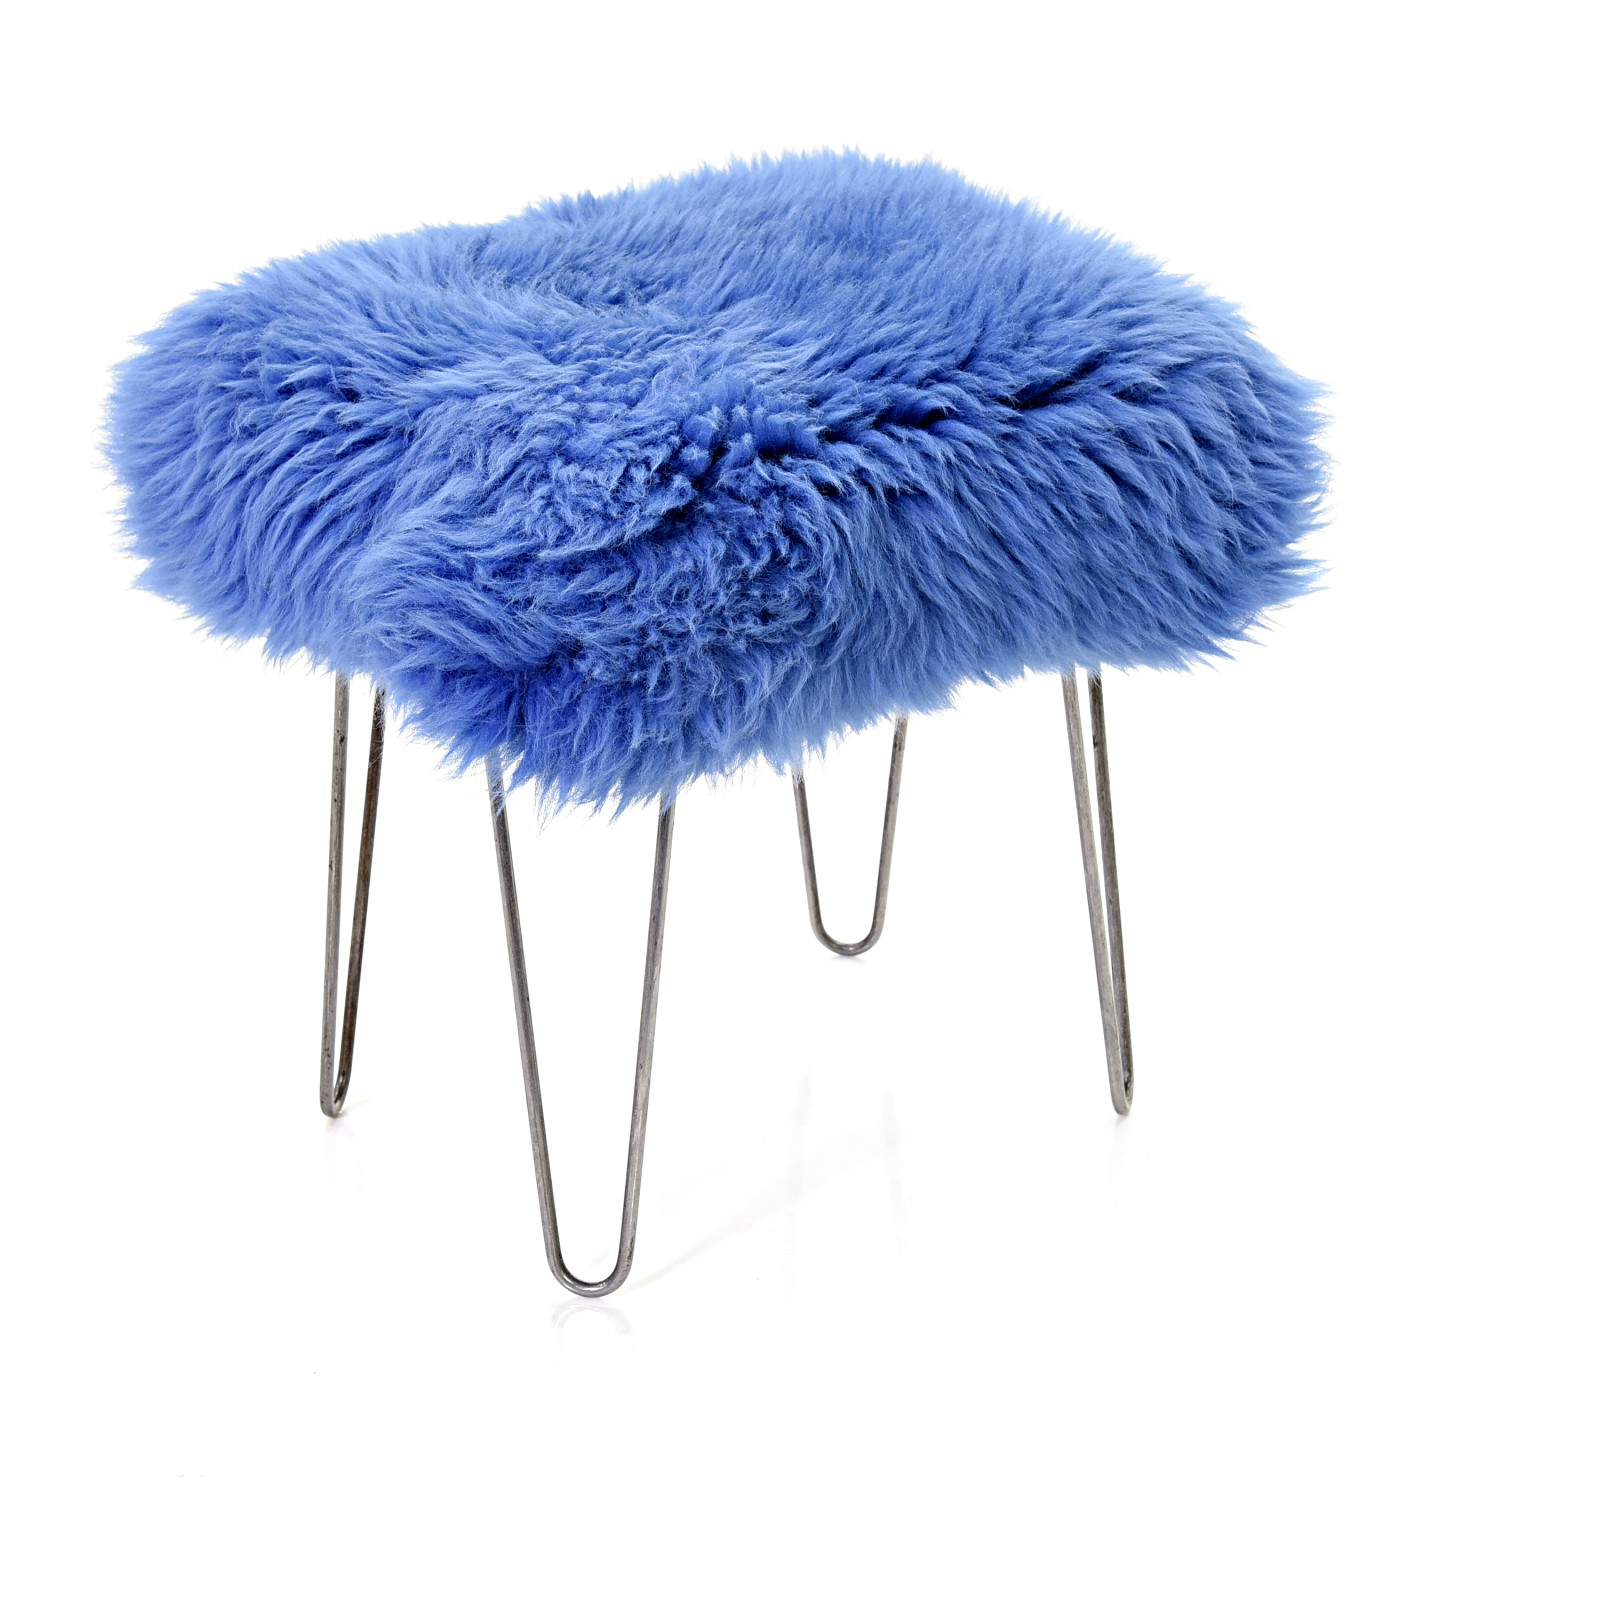 Ffion Sheepskin Footstool Cornflower Blue